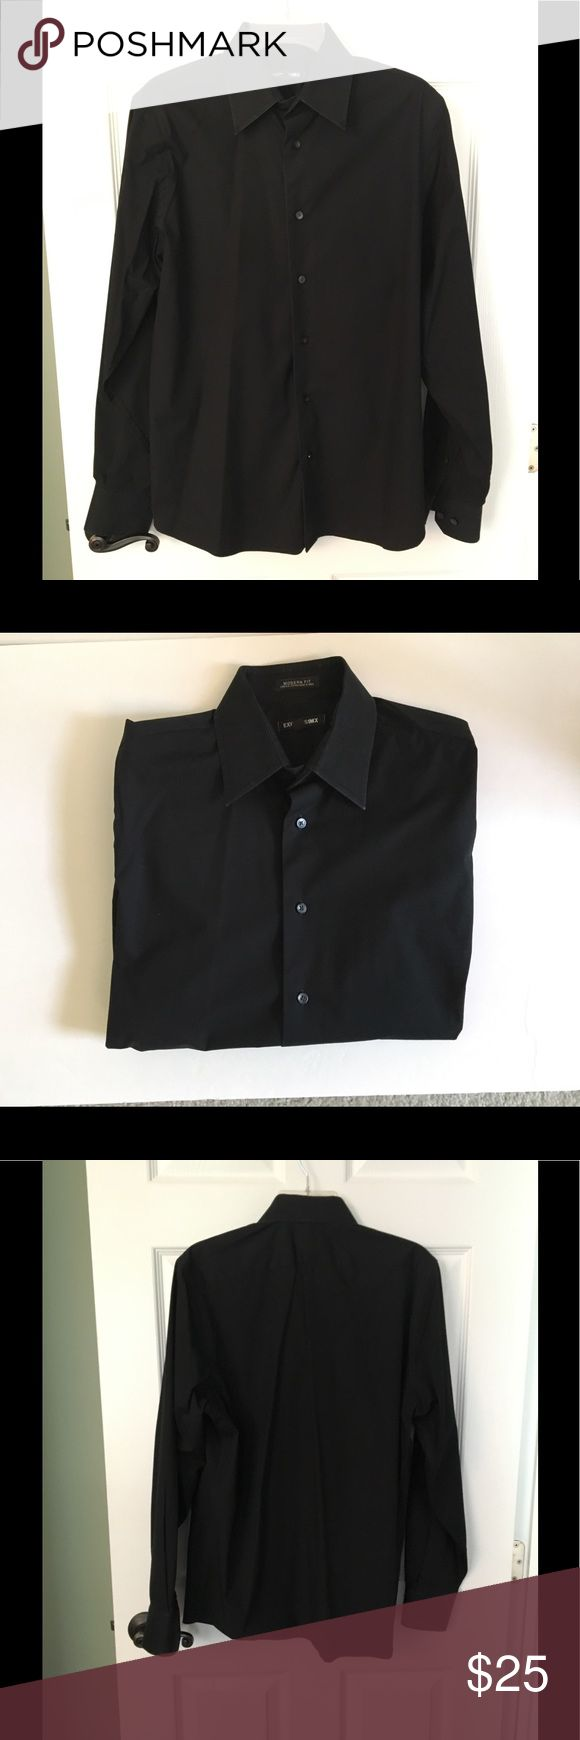 Express 1MX modern fit black dress shirt Express 1MX modern fit dress shirt, stretch cotton. Button down, buttons at wrists, extra buttons included. Freshly dry cleaned at an organic dry cleaners. Express Shirts Dress Shirts